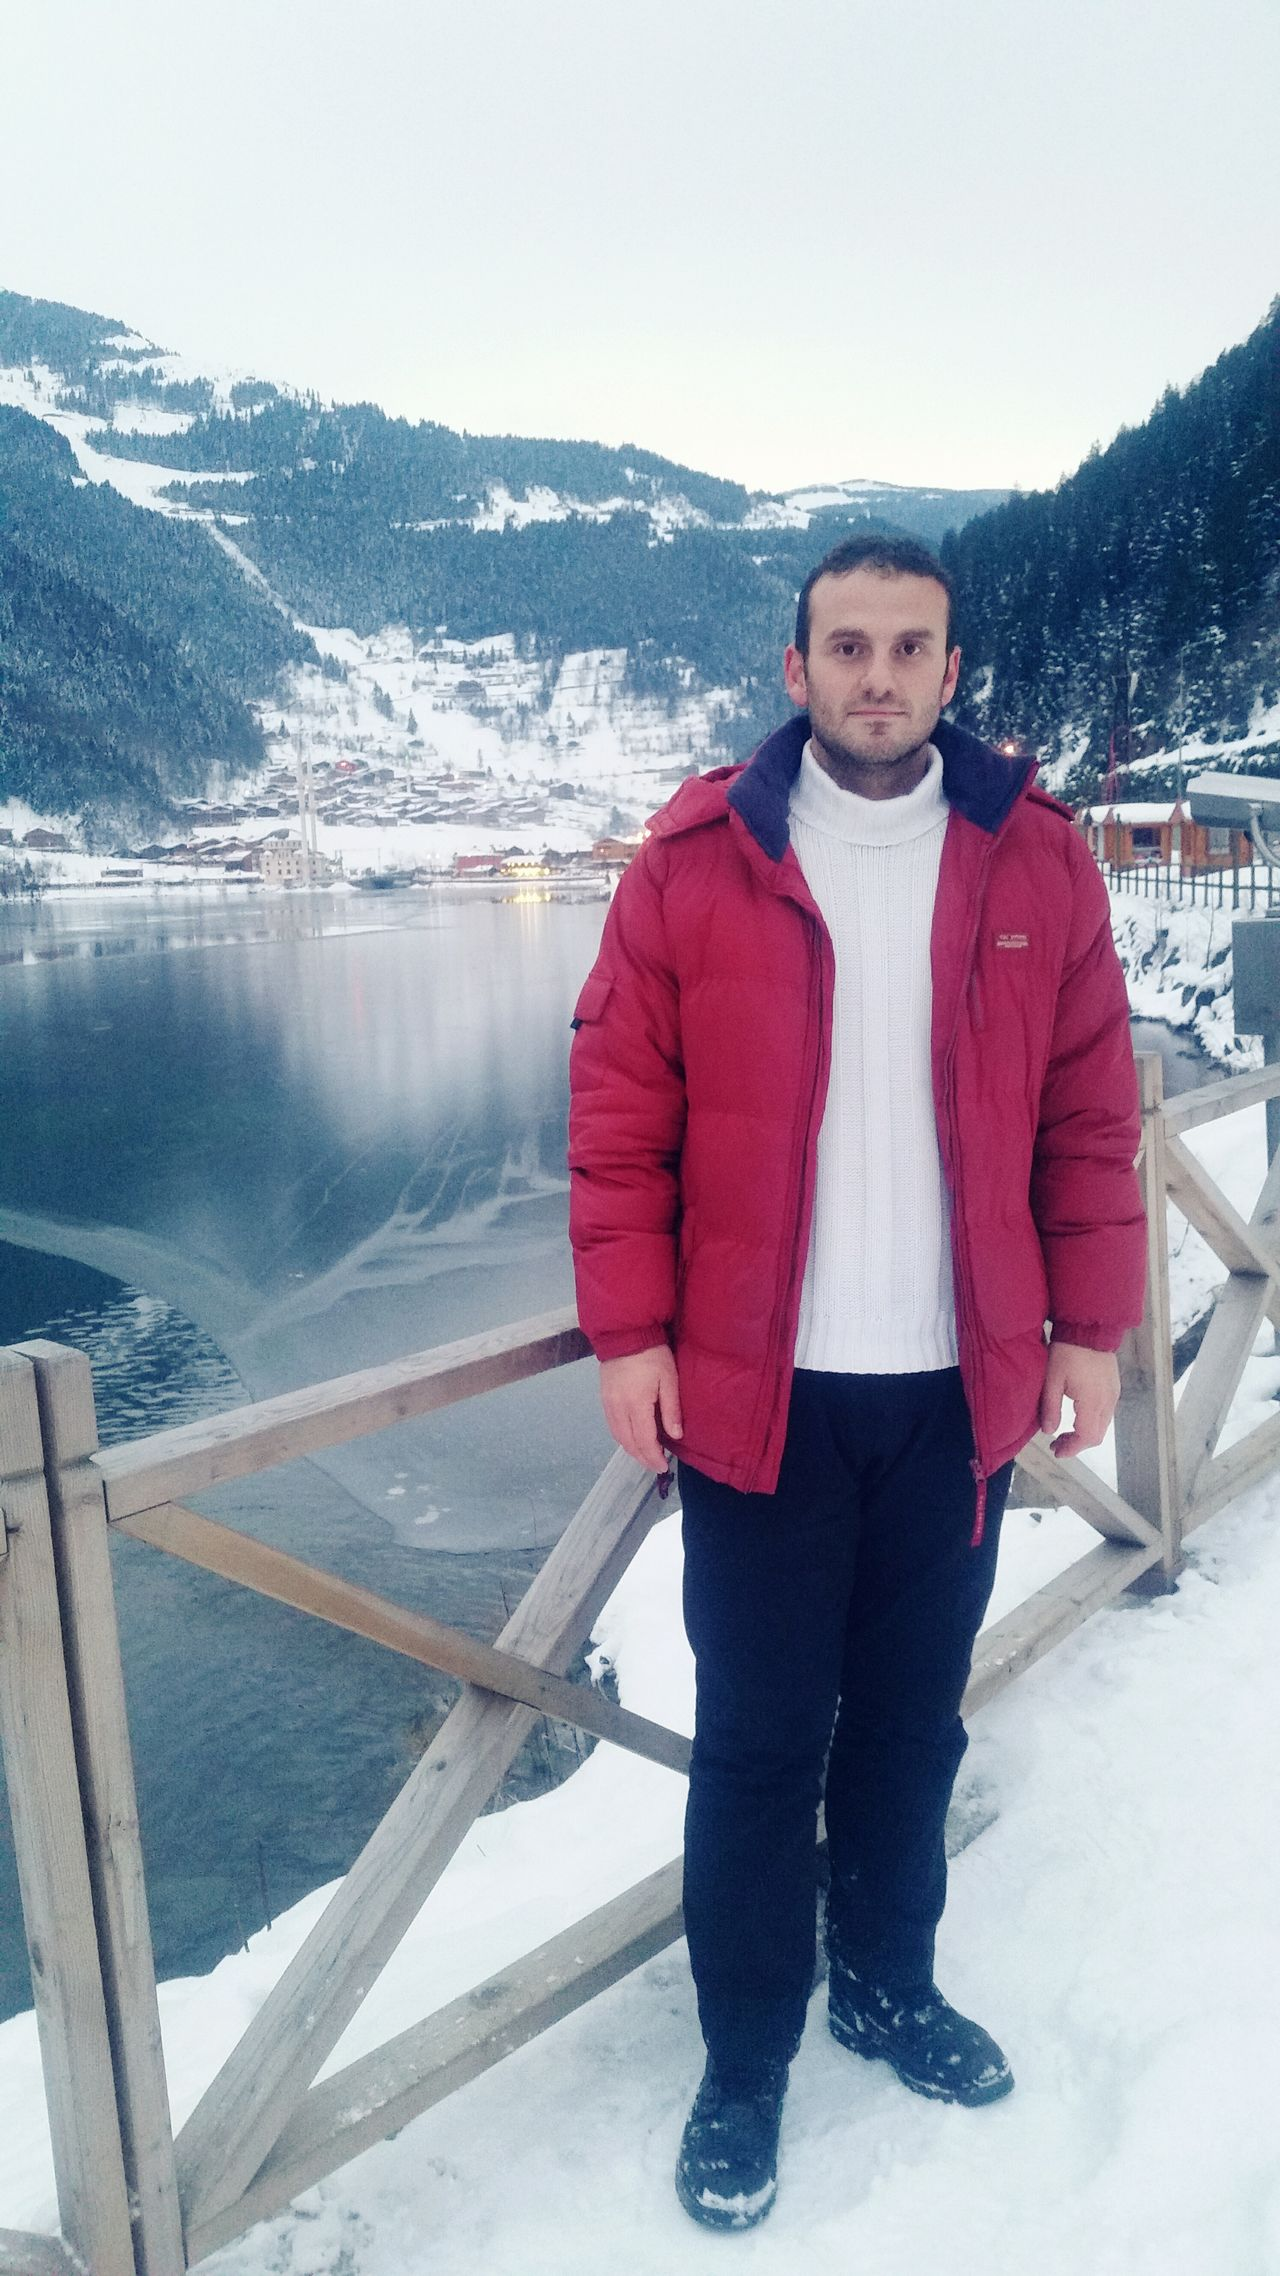 One Man Only Sky People Cold Temperature Warm Clothing Samsung Galaxy S5 Trabzon Uzungol Turkey Balık Trabzon One Person Winter Snow